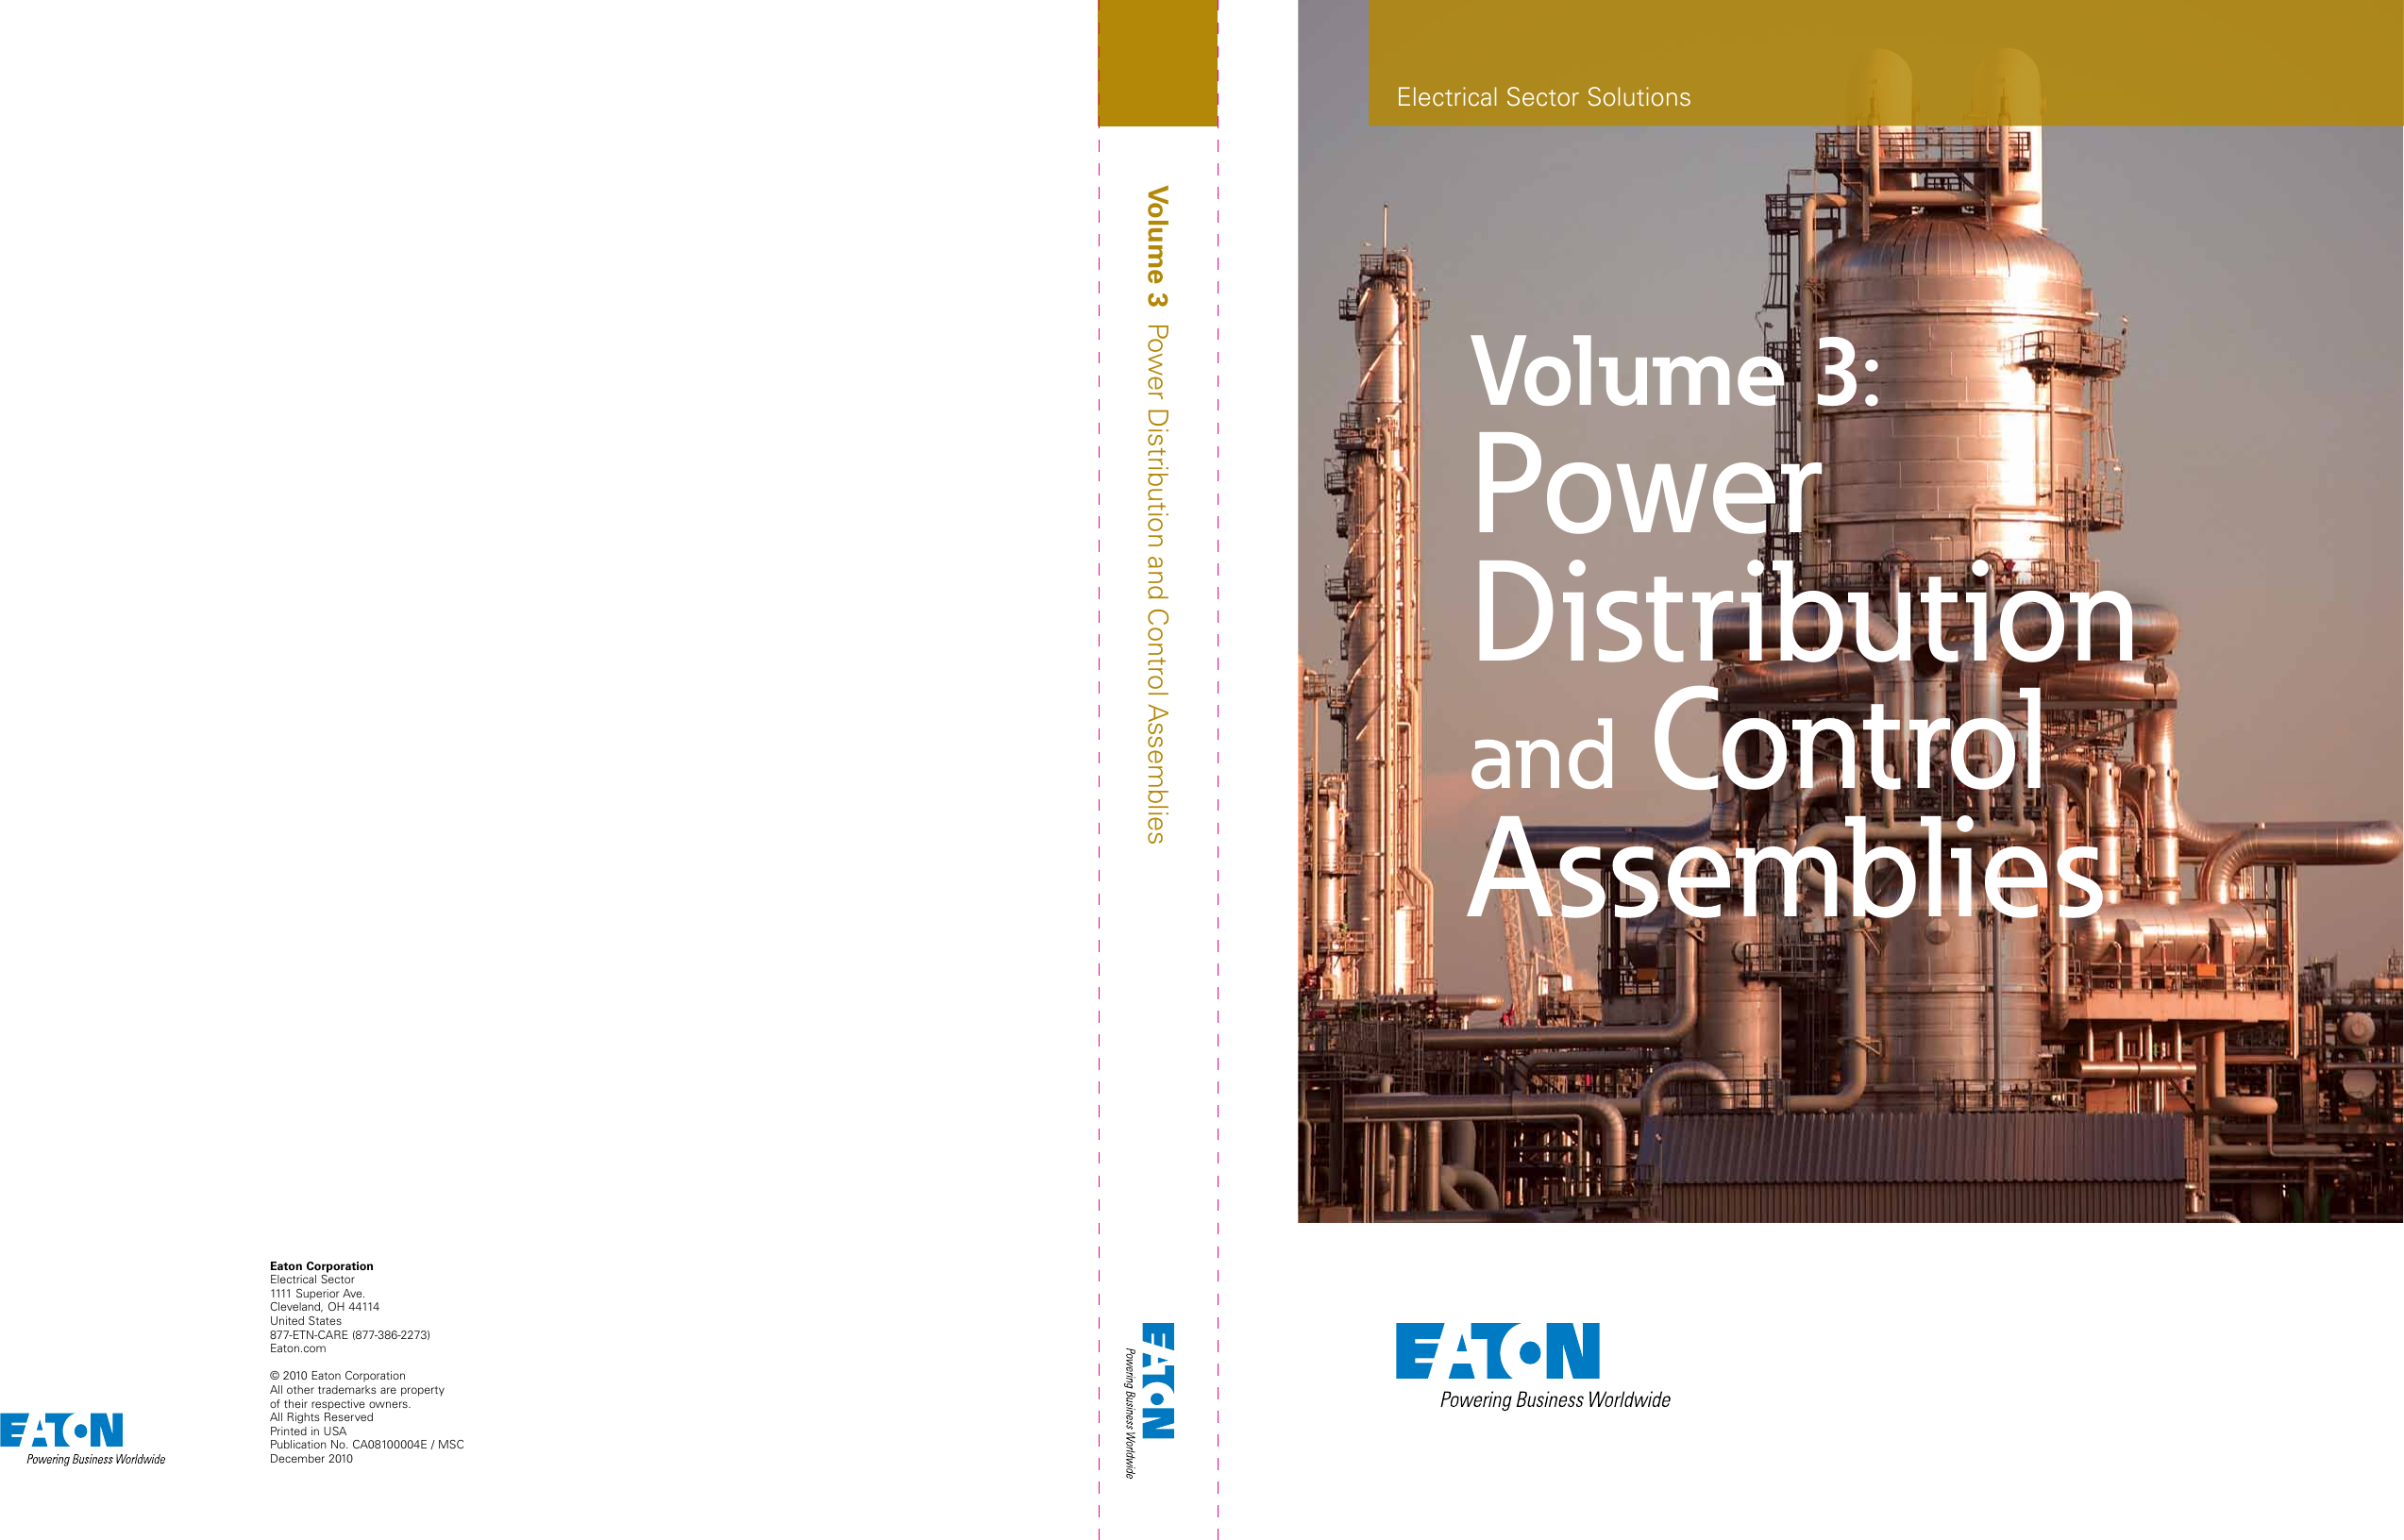 Volume 03power Distribution And Control Assemblies Overload Relay Cep7 Diagram Neutral Wire